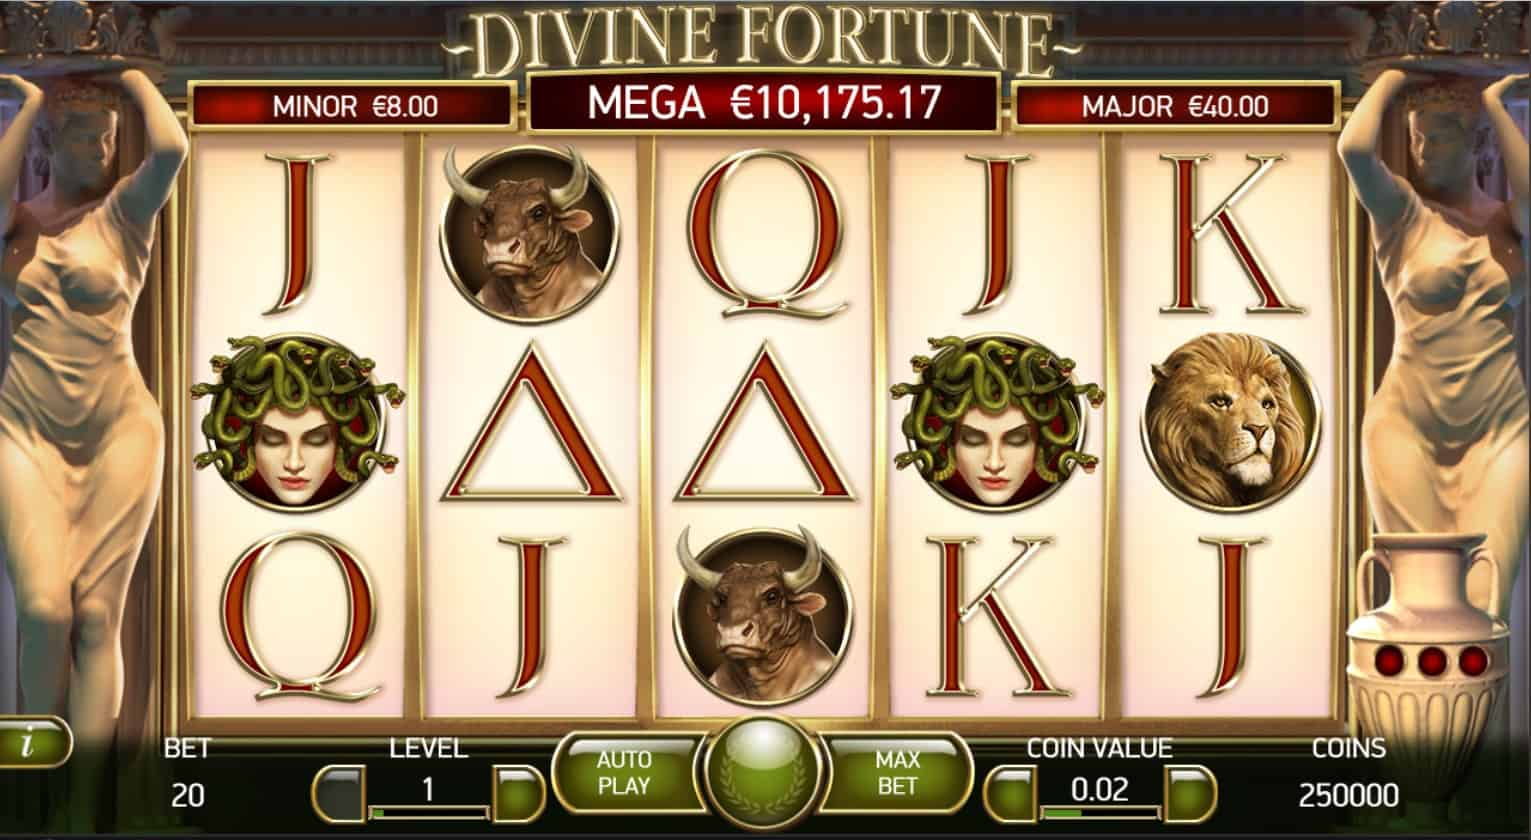 netent - divine fortune - game play - casinogroundsdotcom